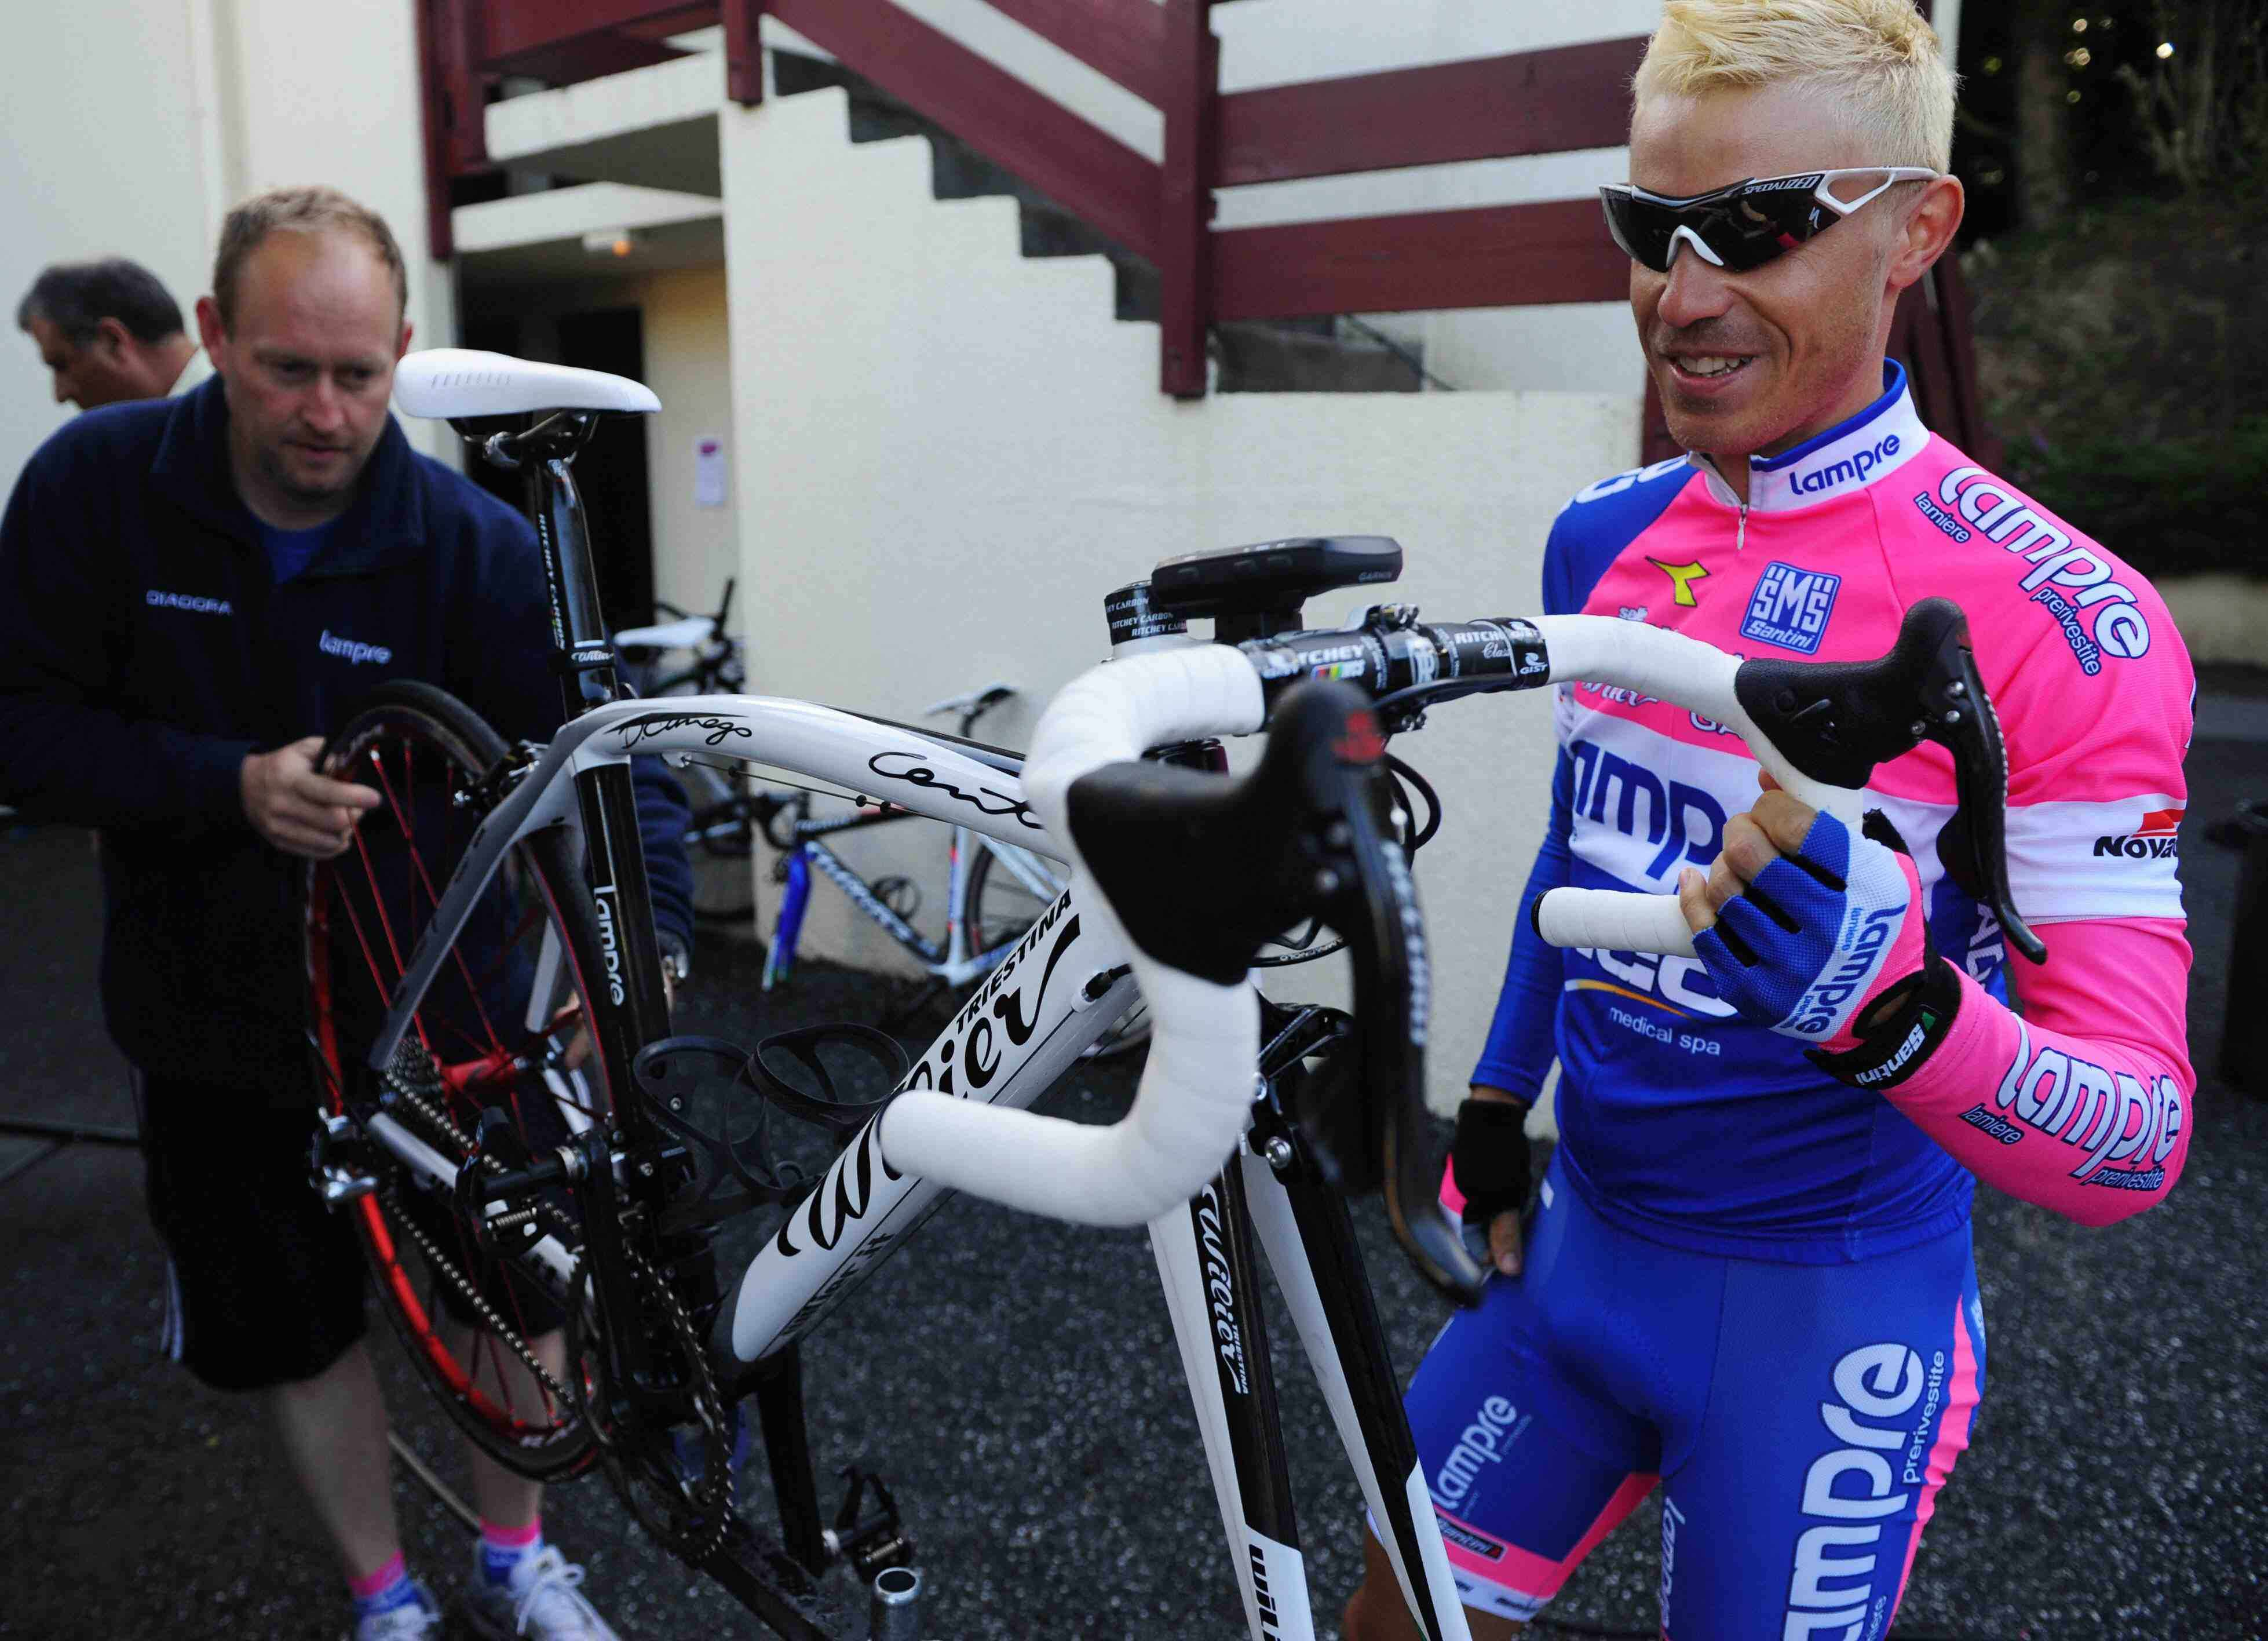 Damiano Cunego makes sure everything's just right, including his blonde locks.